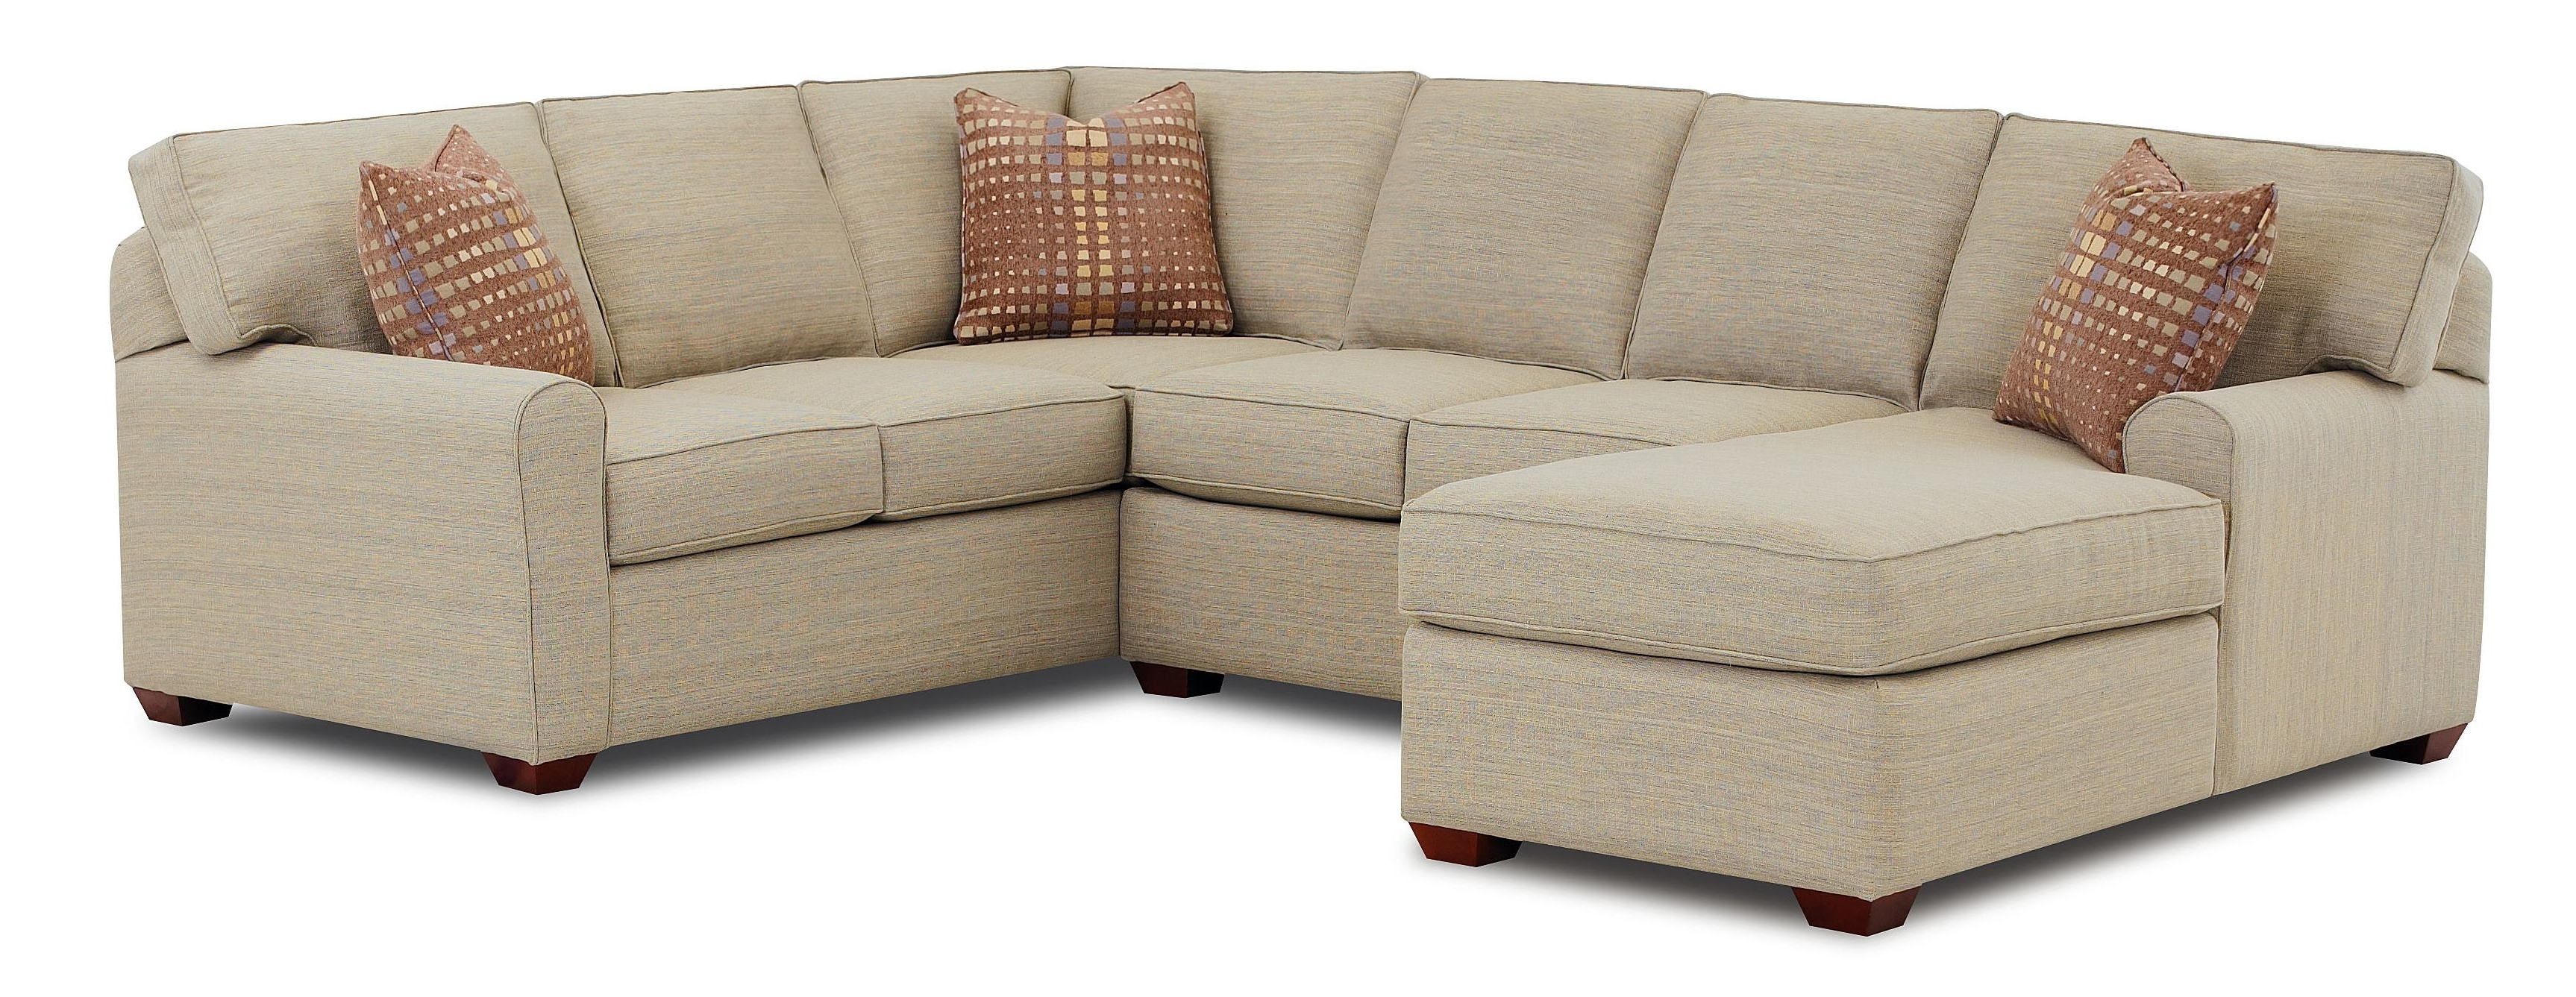 Right Facing Chaise Sectionals For Favorite Sectional Sofa With Left Facing Chaise Loungeklaussner (View 8 of 15)